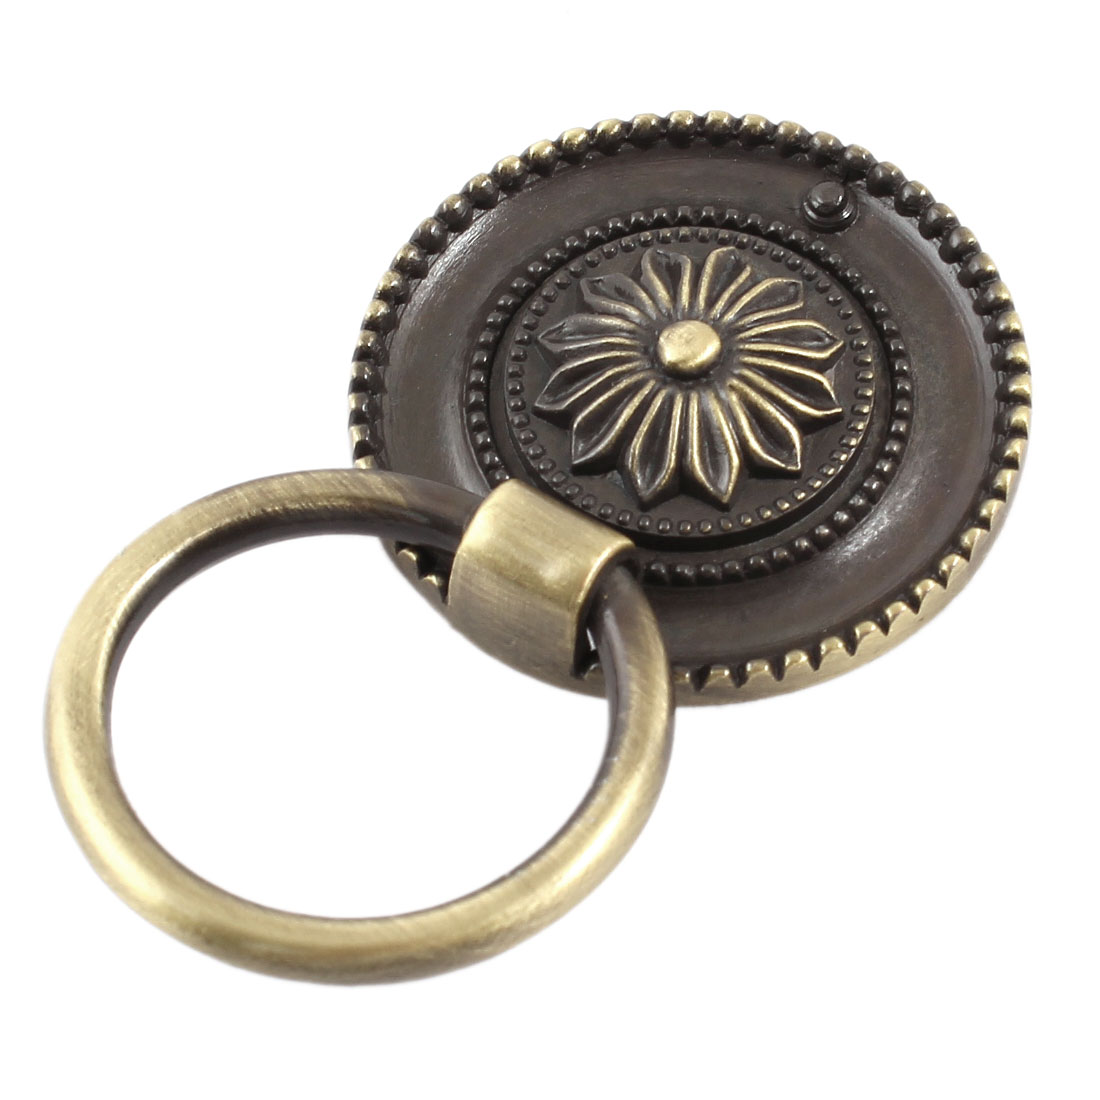 "Bronze Tone Flower Pattern Metal Ring Furniture Door Pull Handle Grip 1.4"" Diameter"